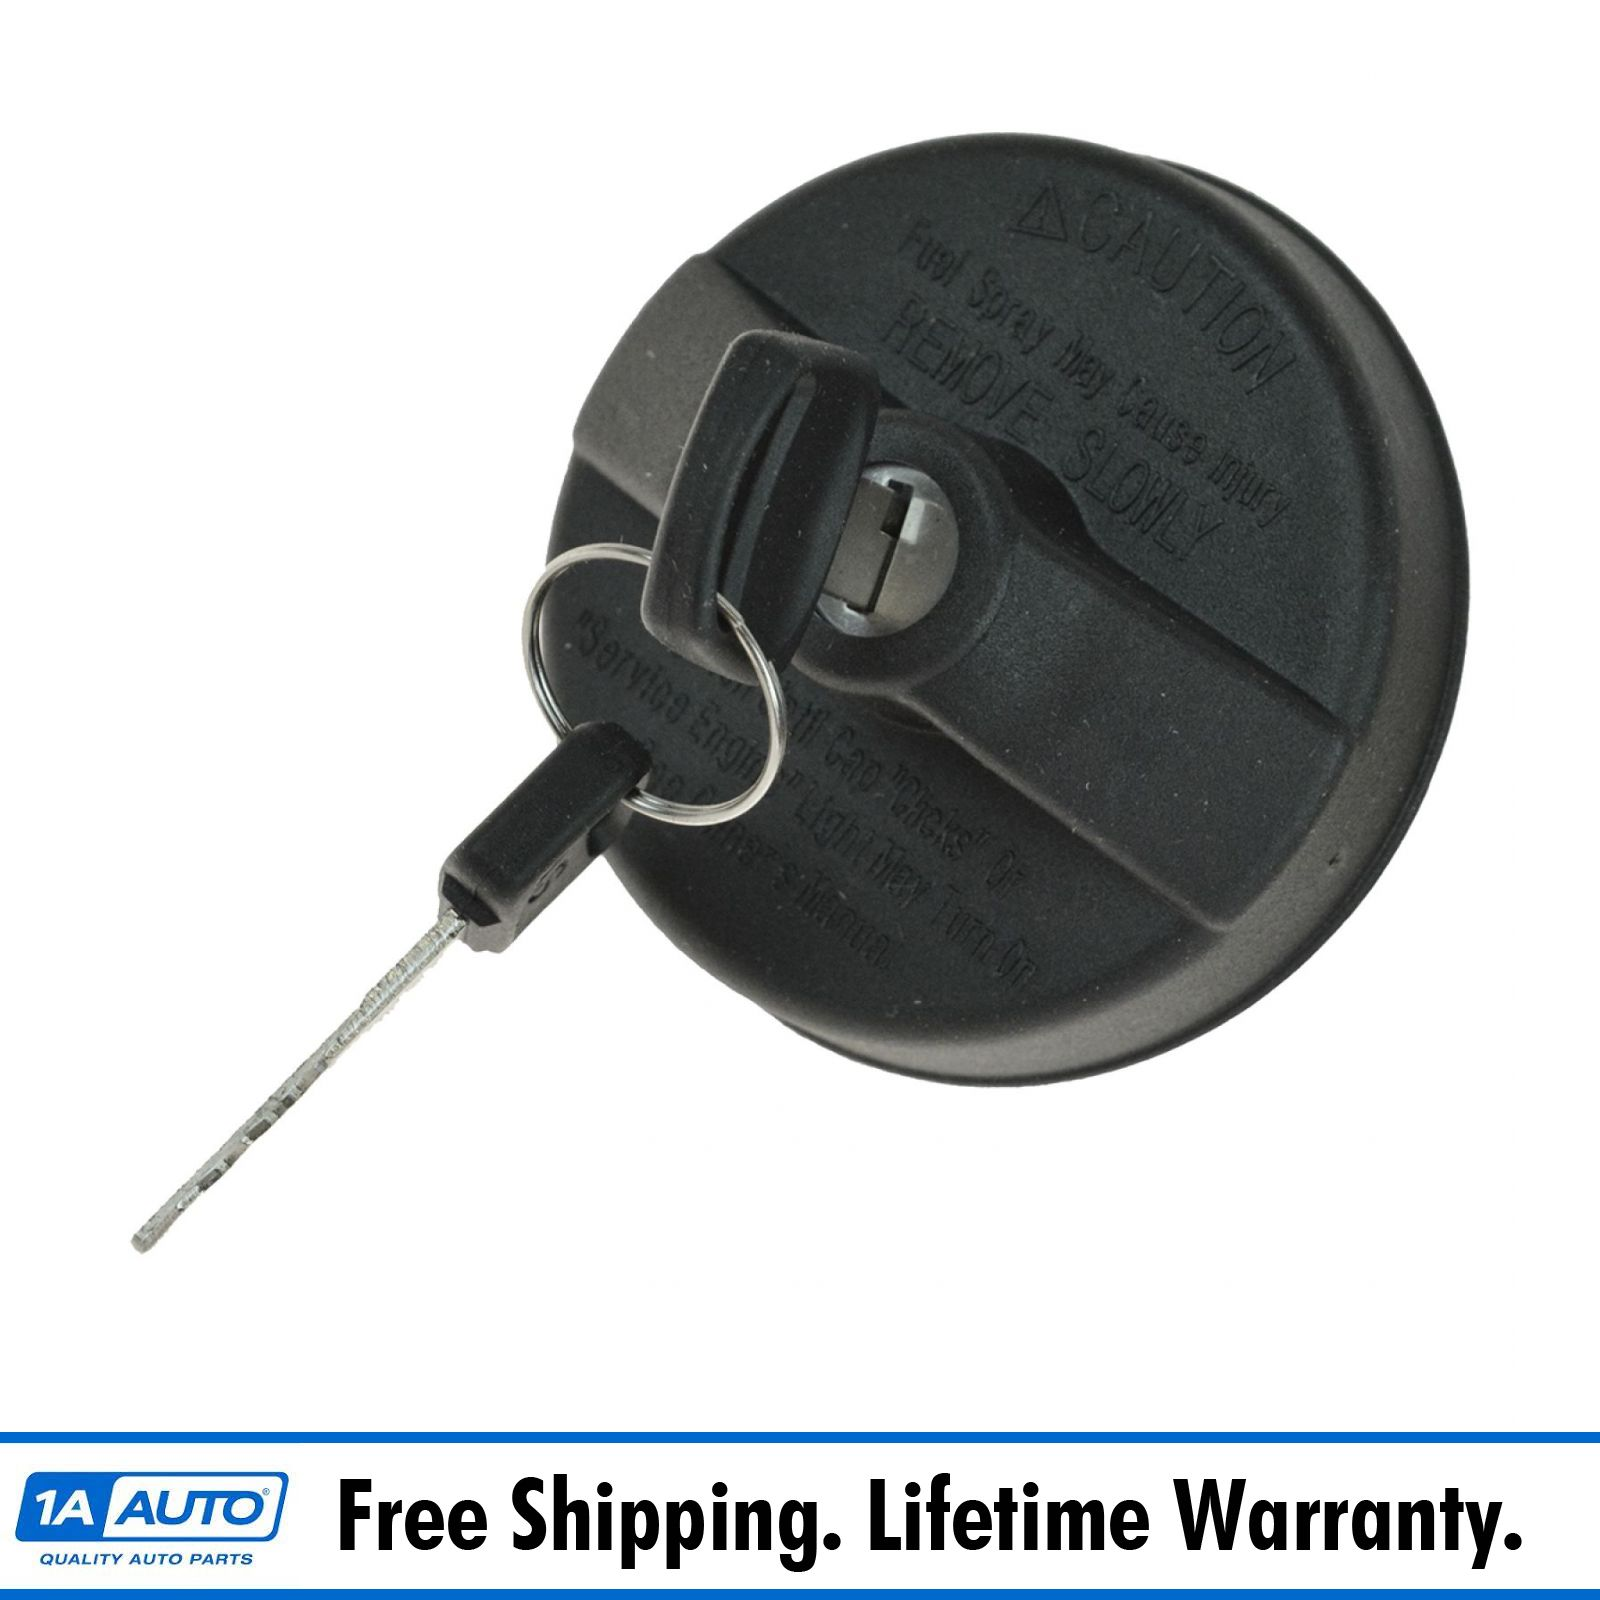 Locking Gas Fuel Cap For Buick Cadillac Chevy GMC Isuzu